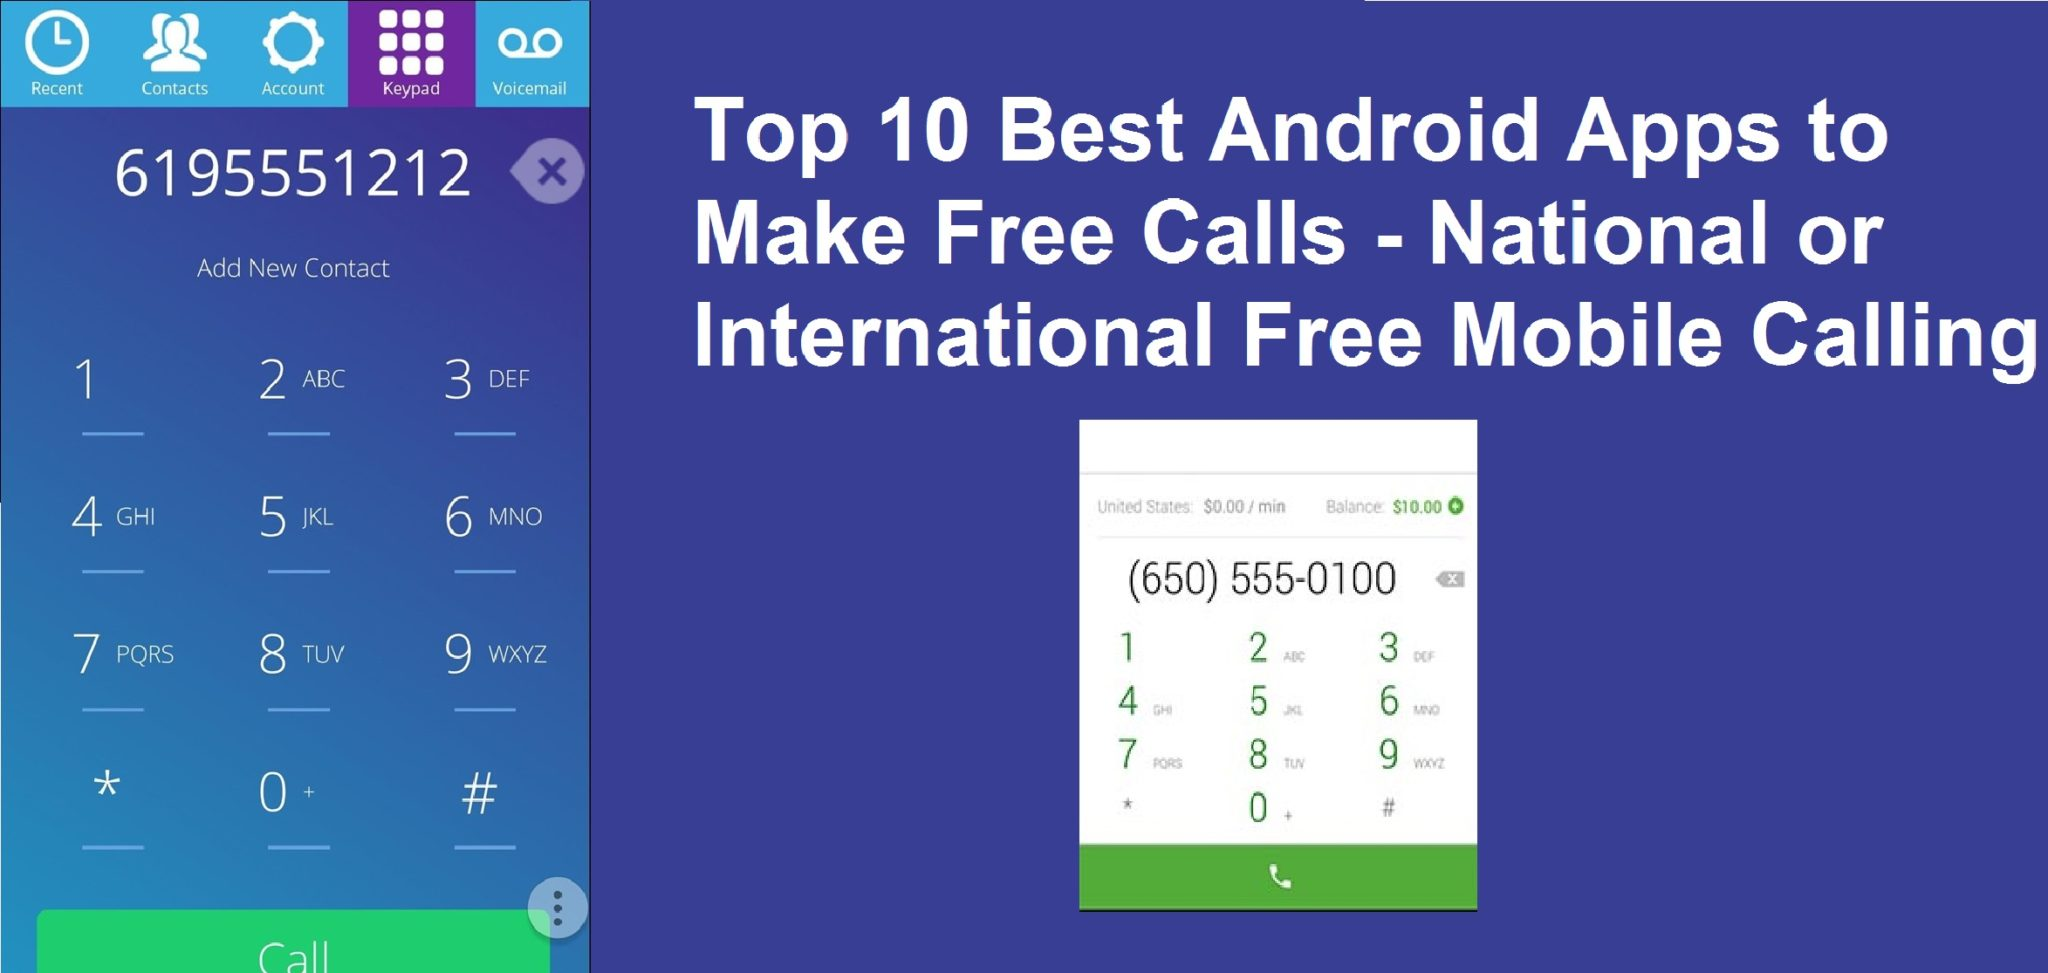 Top 10 Best Android Apps to Make Free Calls - National or International Free Mobile Calling